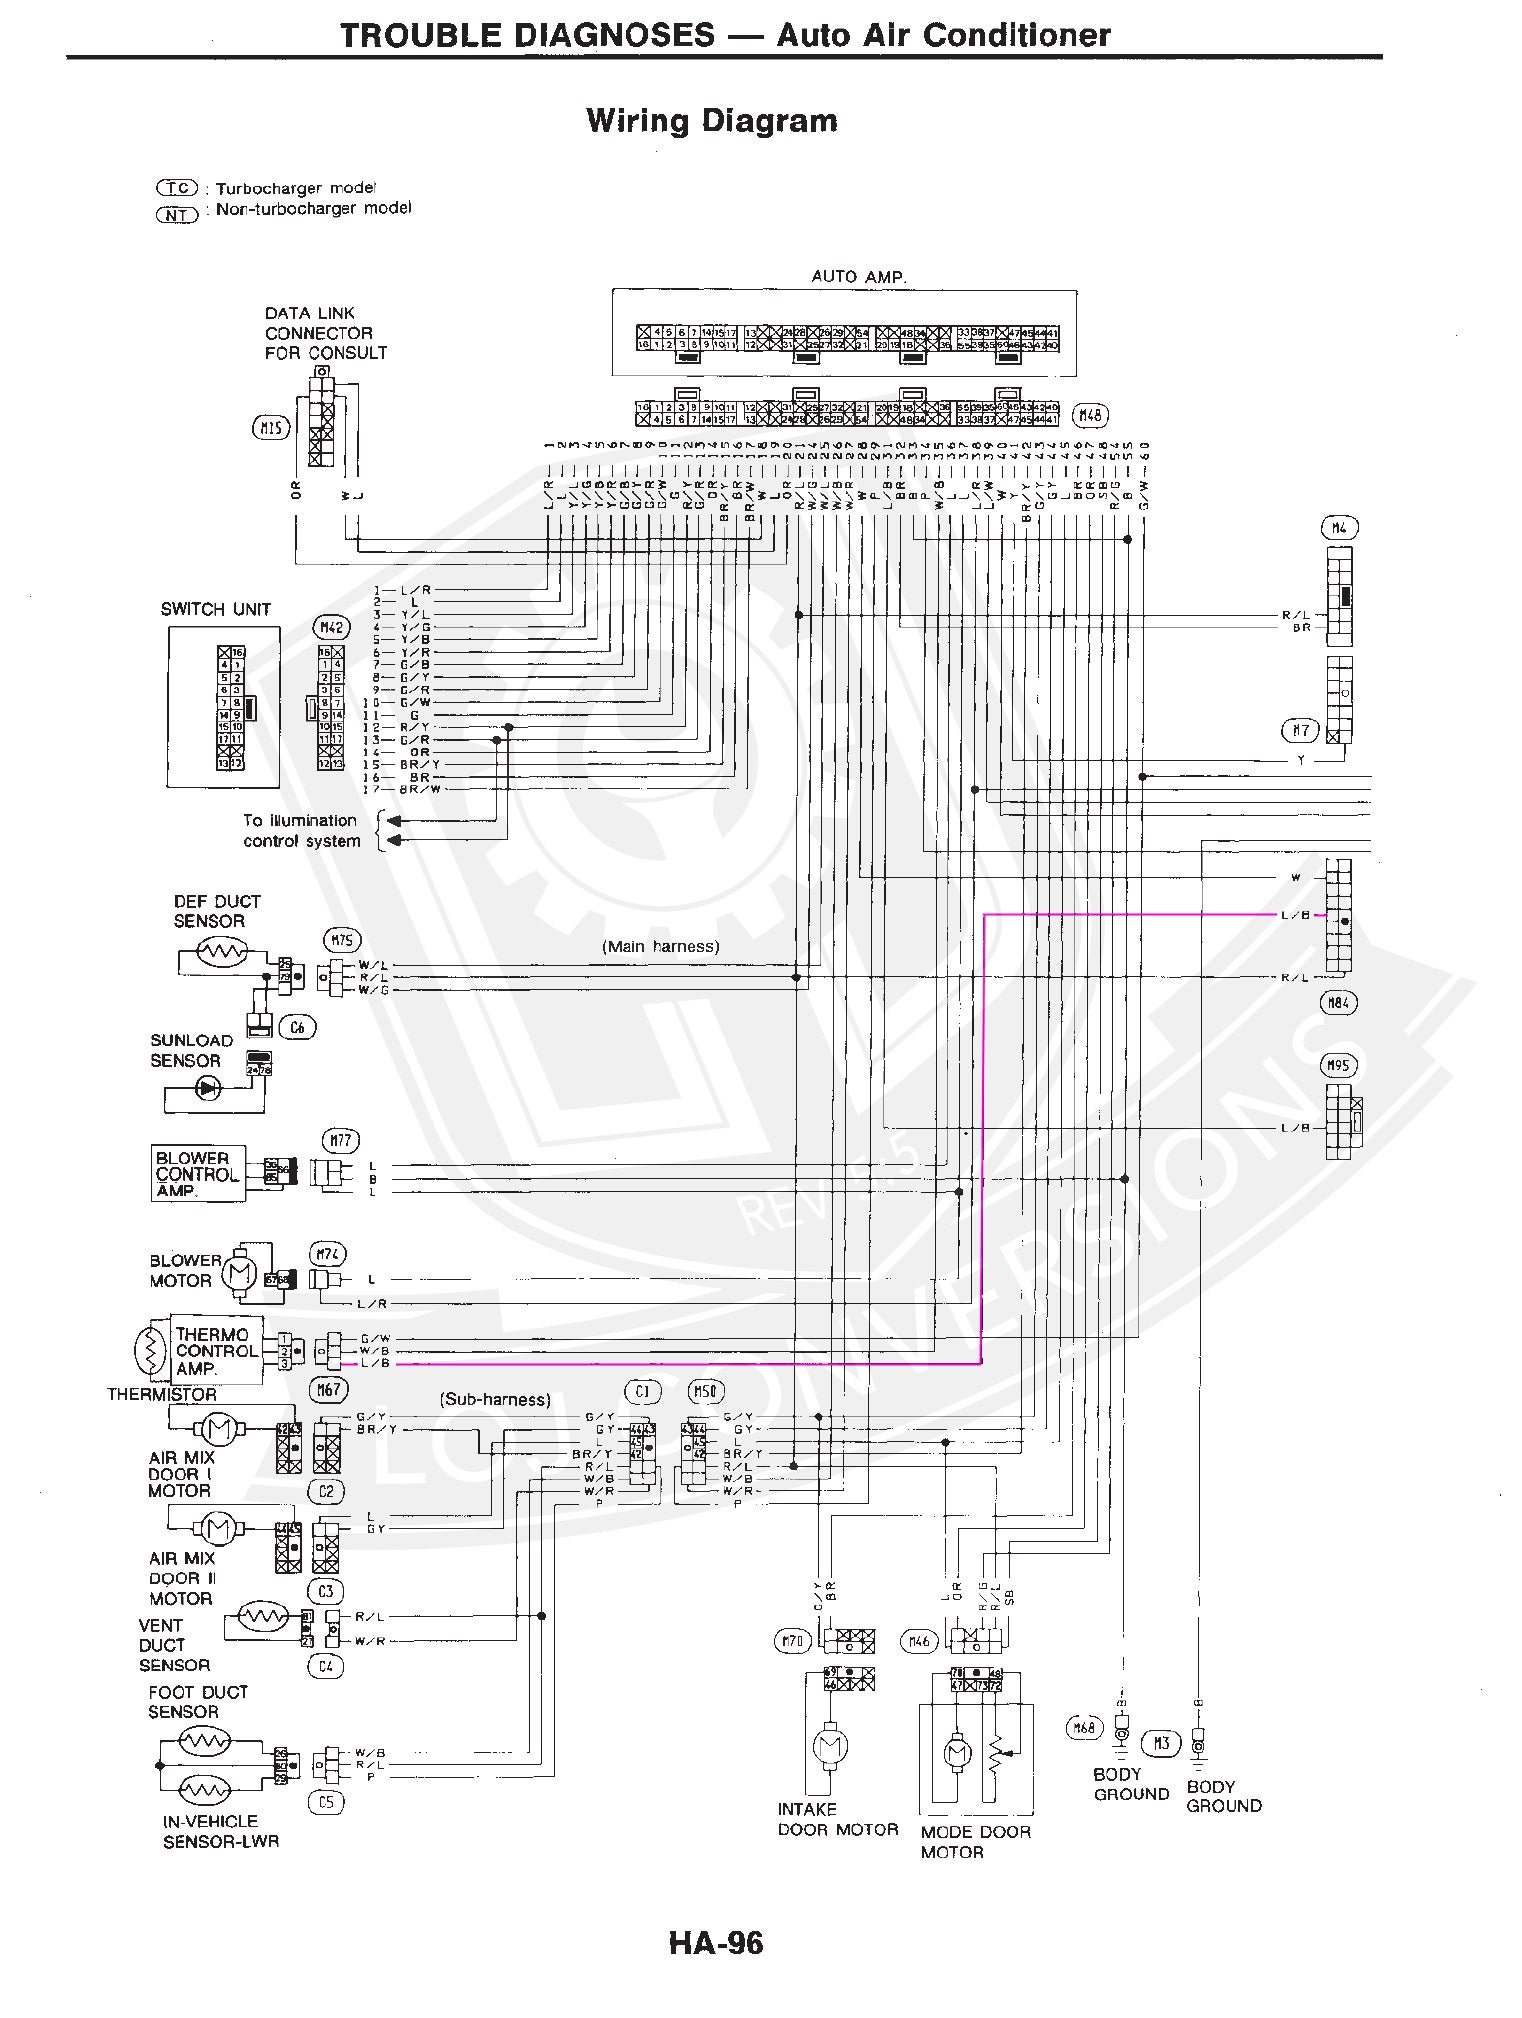 1990 300zx Engine Wiring Diagram Schematic - Wiring Diagram Online on 280z wiring harness diagram, f-22 diagram, bmw wiring harness diagram, camaro wiring harness diagram, subaru wiring harness diagram, 300c wiring harness diagram, mitsubishi wiring harness diagram, integra wiring harness diagram, toyota wiring harness diagram, miata wiring harness diagram, nissan 300zx wiring diagram, truck wiring harness diagram, 300zx speakers, mustang wiring harness diagram, 300zx stereo wiring diagram, s13 wiring harness diagram, 300zx engine swap, 3000gt wiring harness diagram, 1990 honda accord ex diagram, running wiring harness diagram,